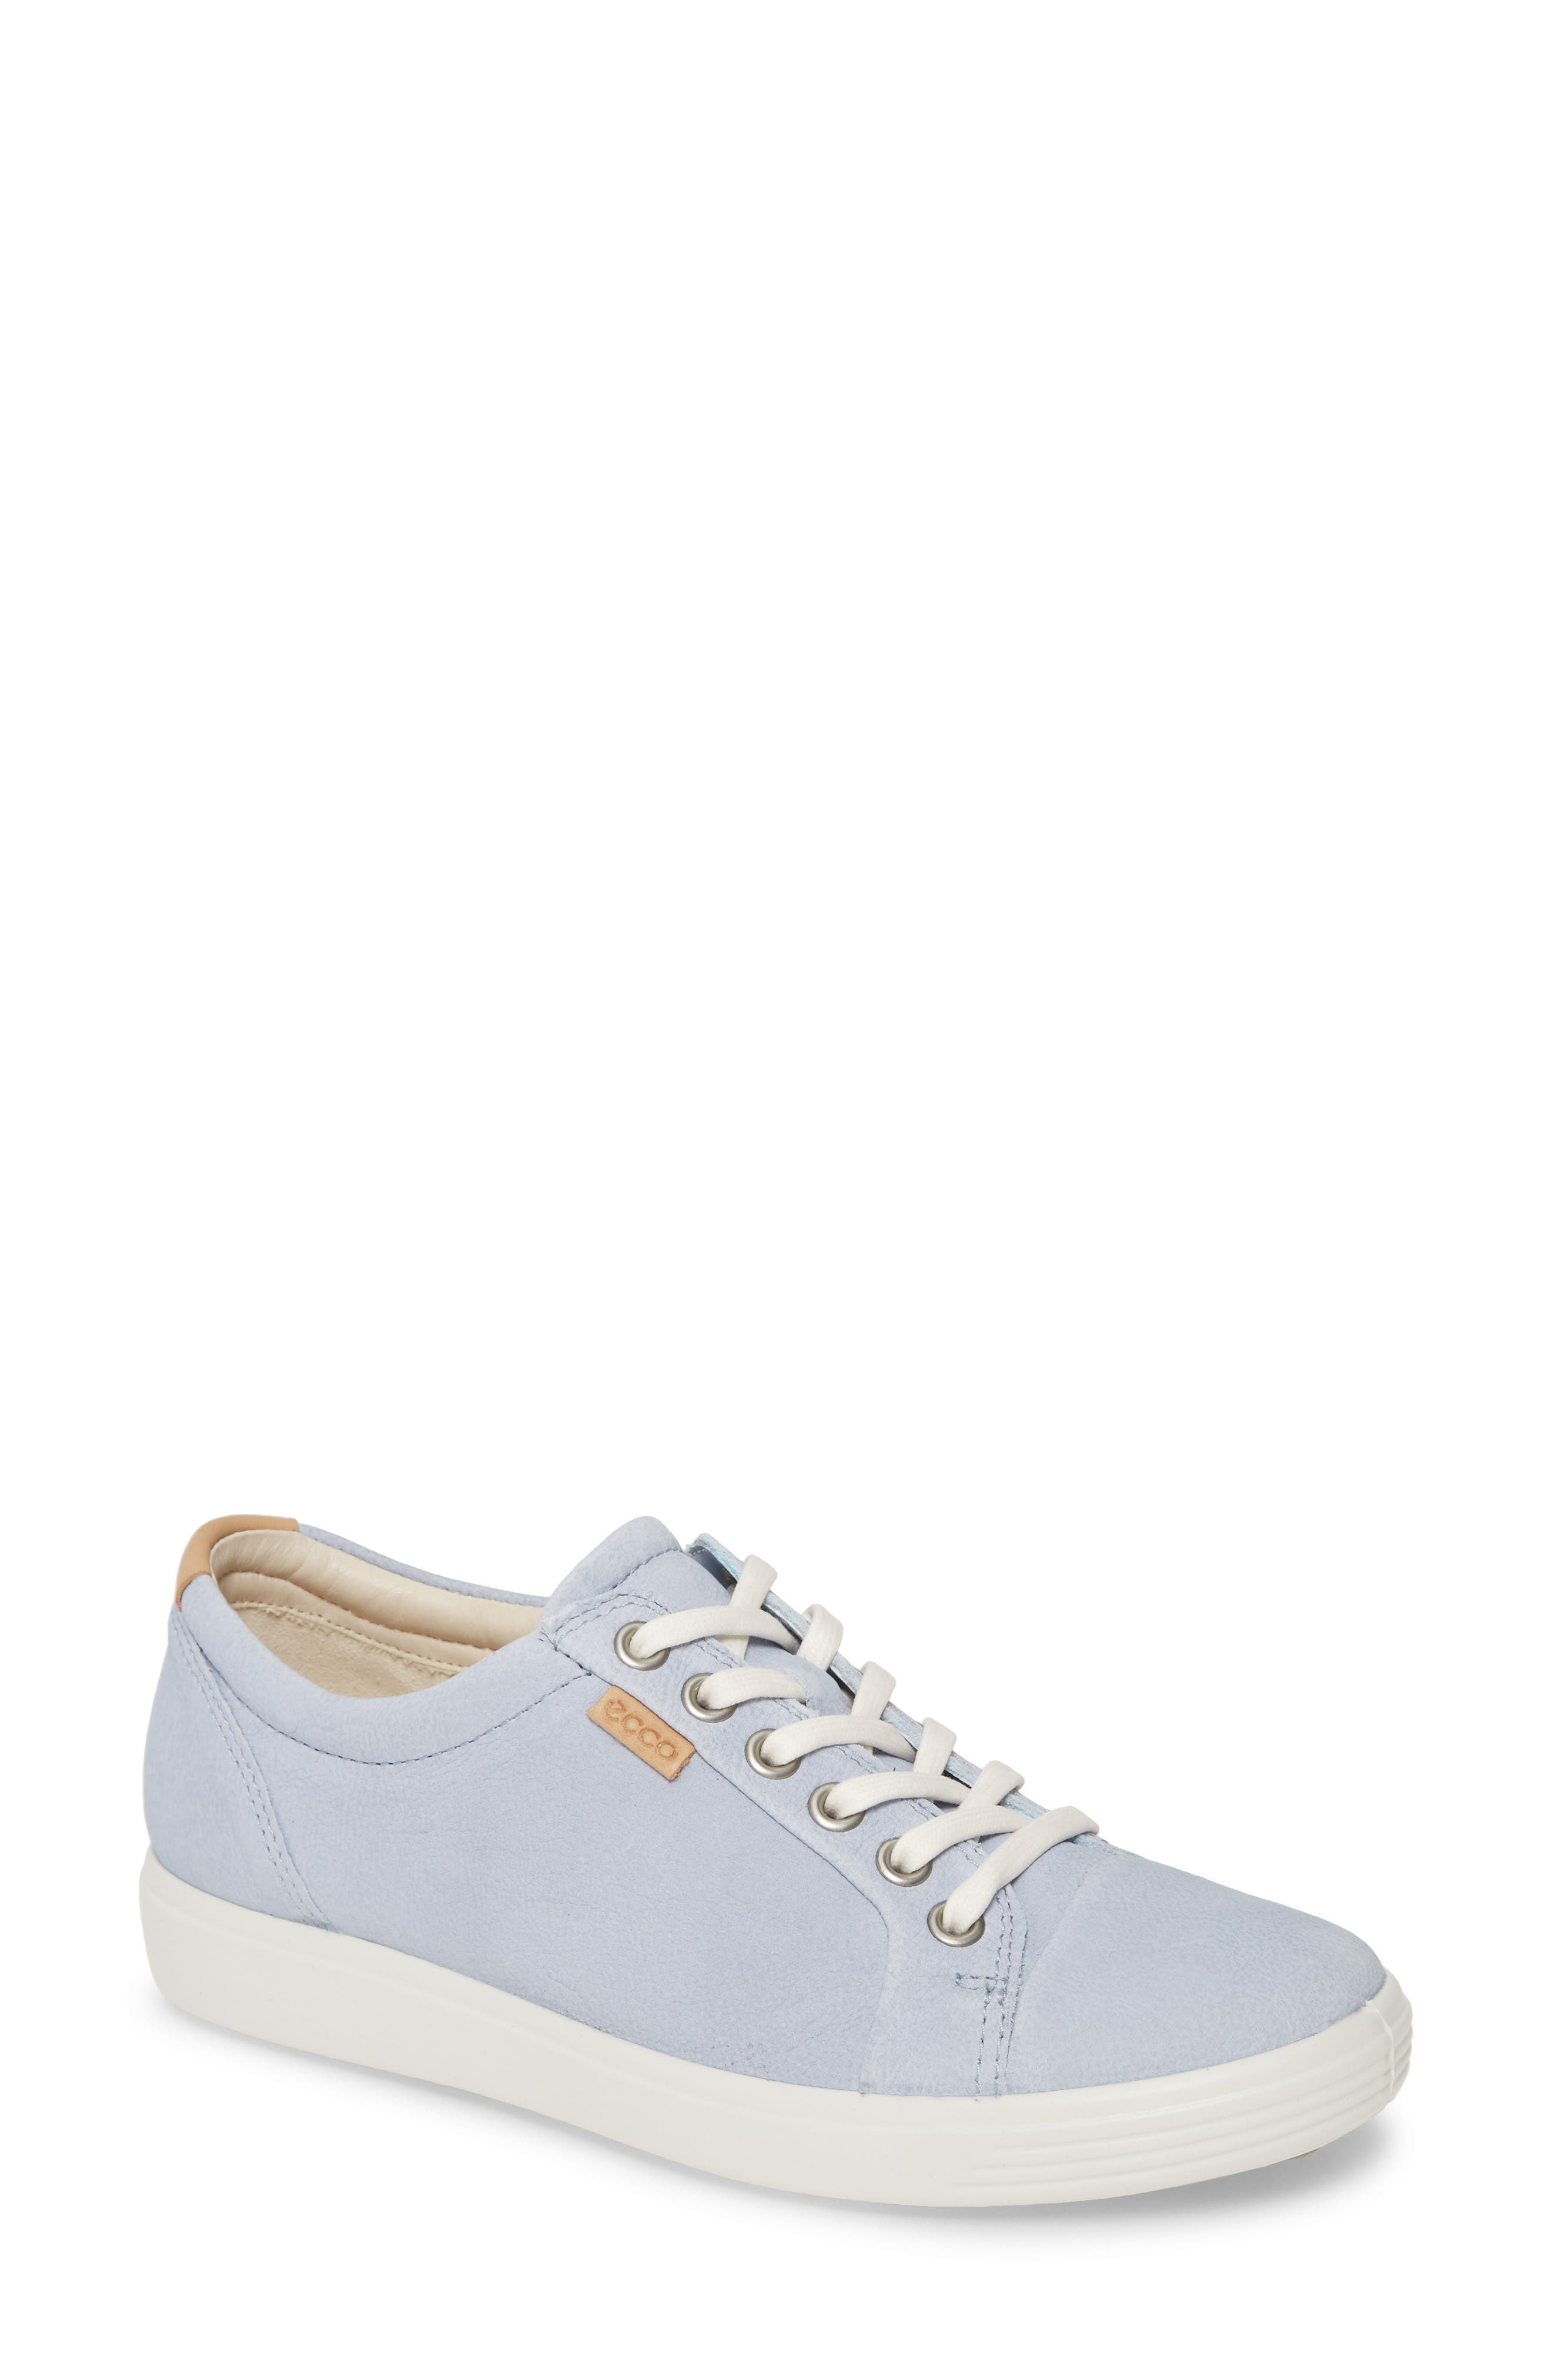 ecco biom shoes cleaning, Dame St?vletter ecco BELLA